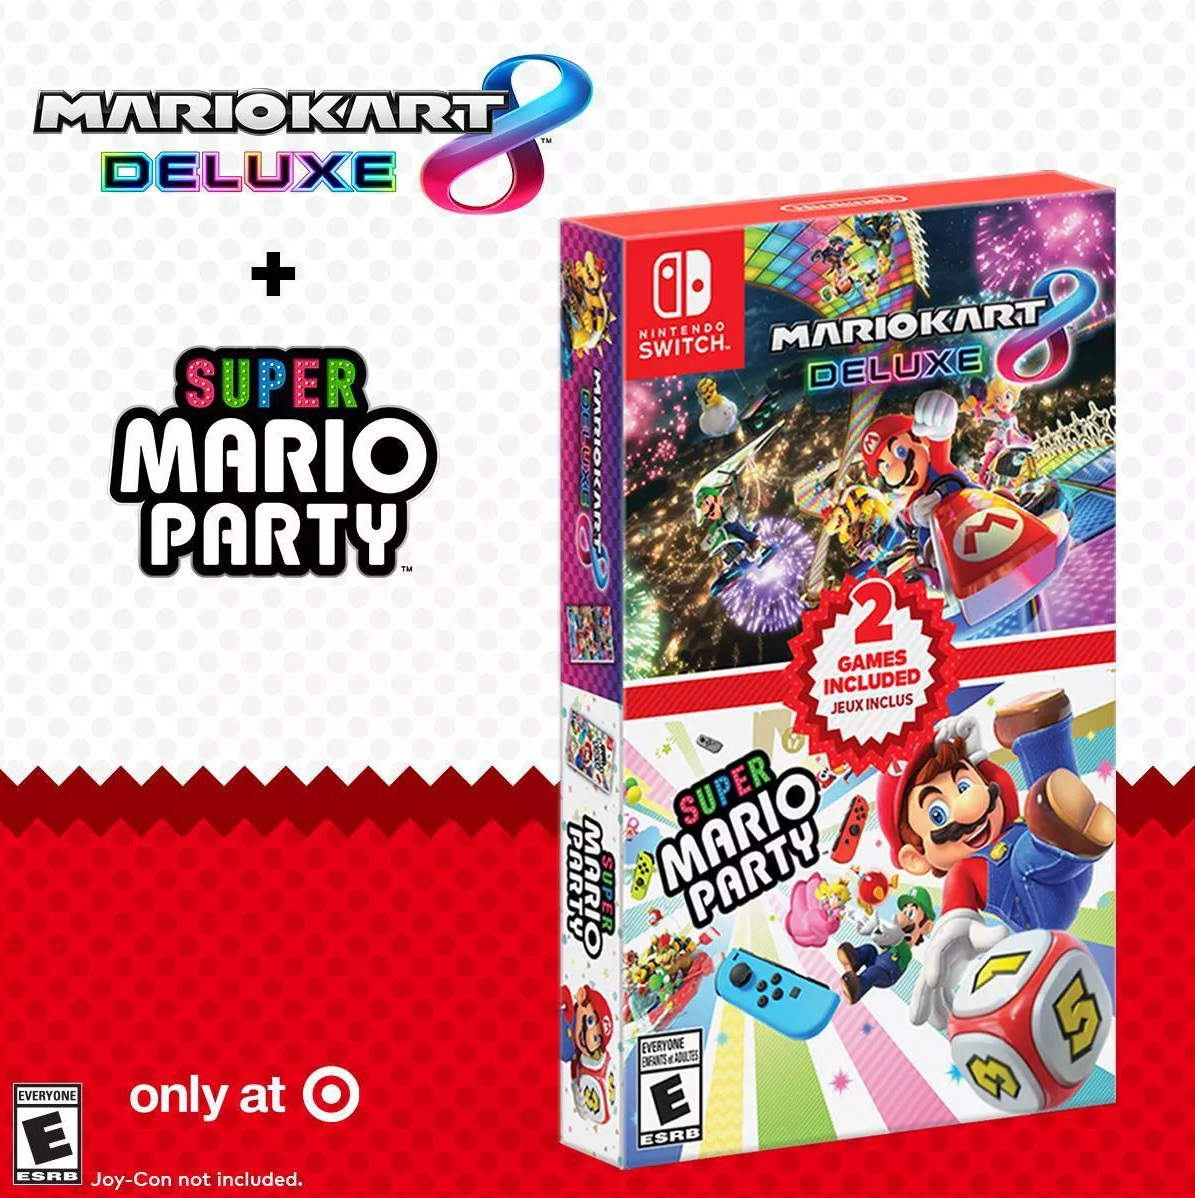 You'd be hard pressed to find Mario Kart 8 Deluxe and Super Mario Party at a better press, together or separate, than in the double pack Target is offering for Cyber Monday.